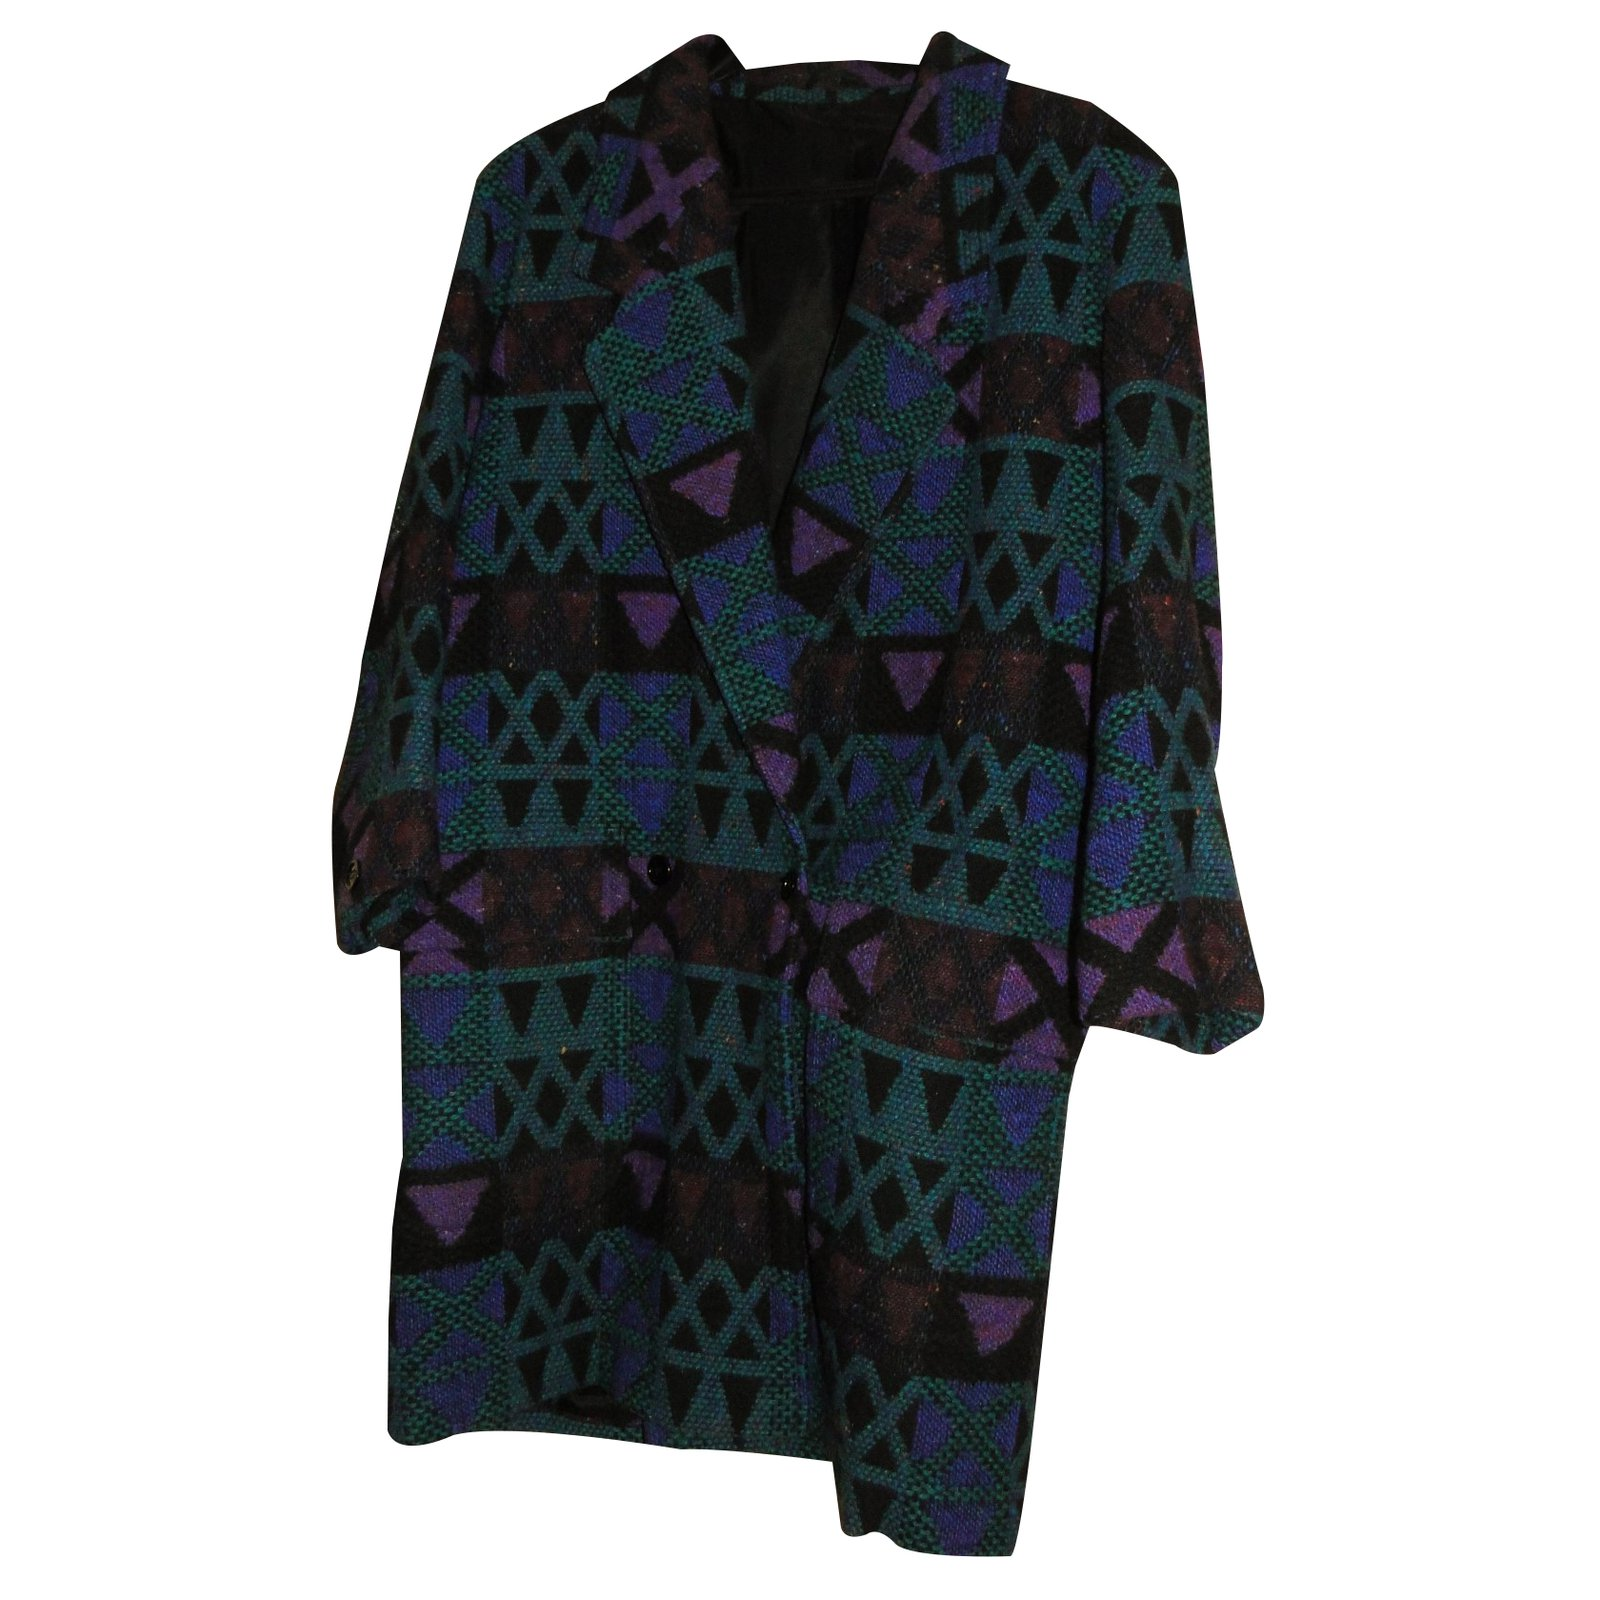 Autre Marque  Olivier Strelli  Coat Coats, Outerwear Wool Blue ref.22951 262bafb3427